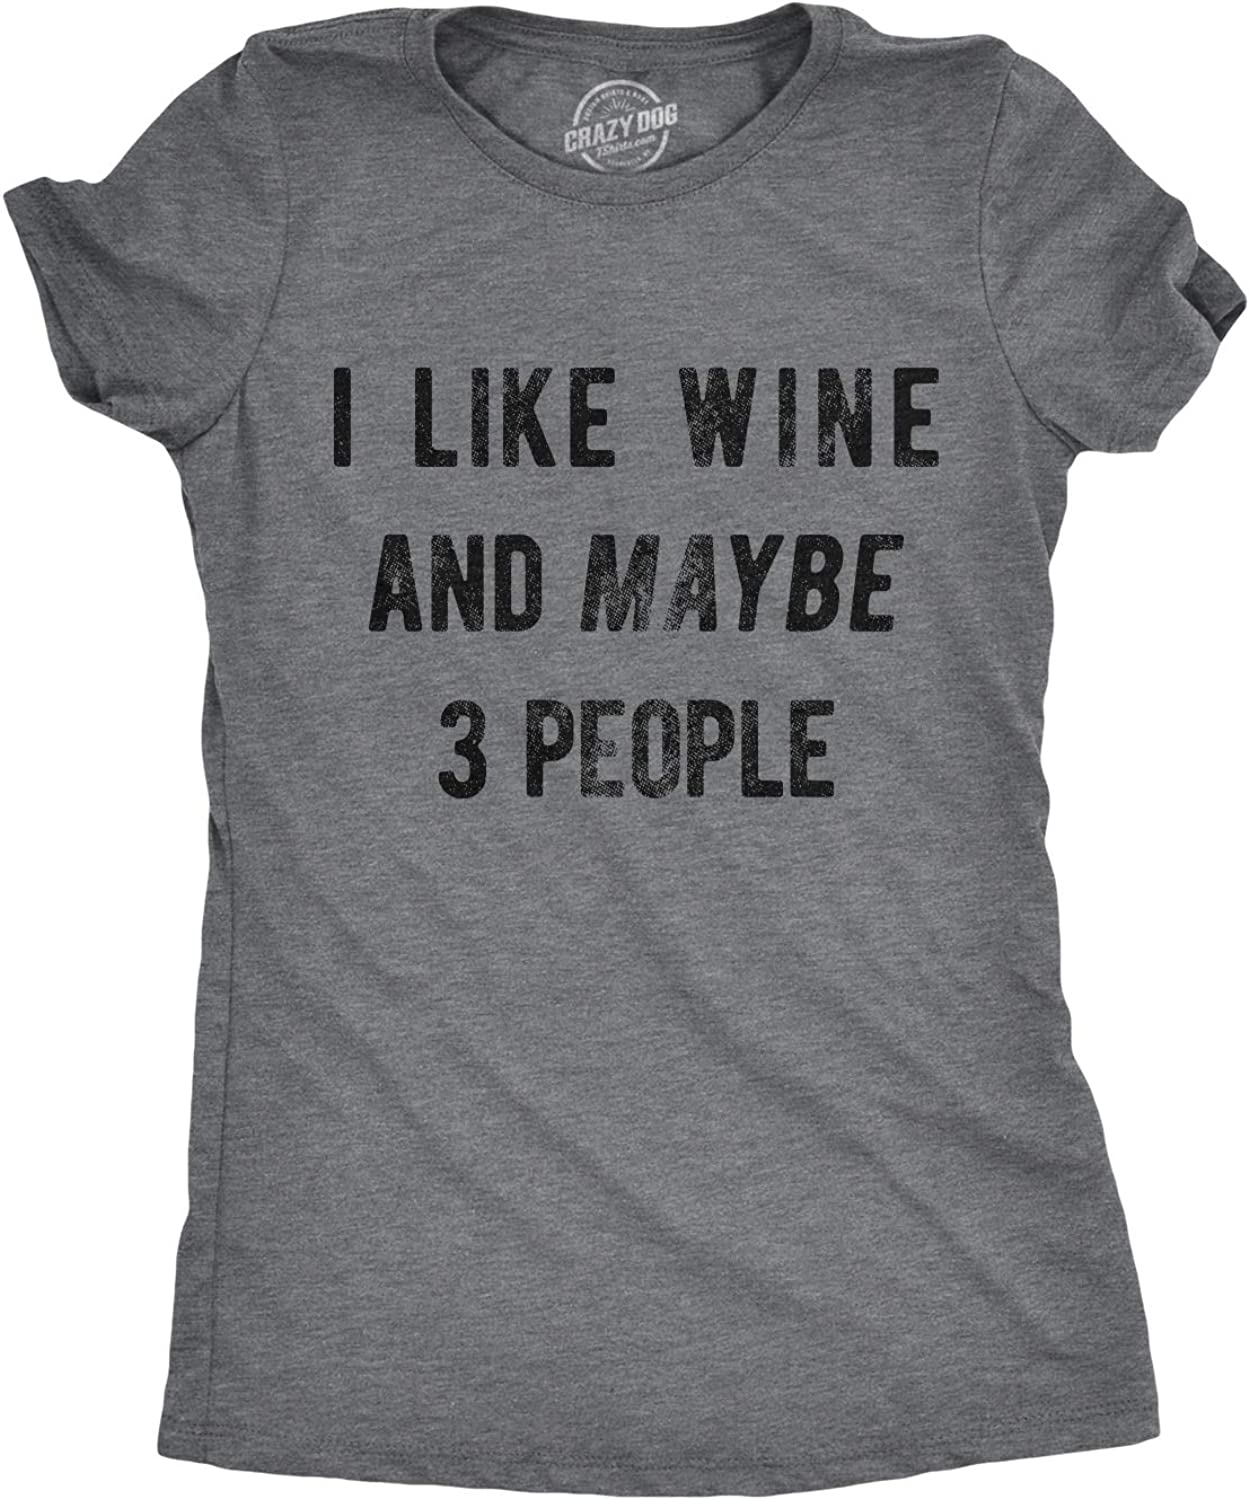 Crazy Dog T-Shirts Womens I Like Wine and Maybe 3 People T Shirt Funny Drinking Sarcastic Graphic